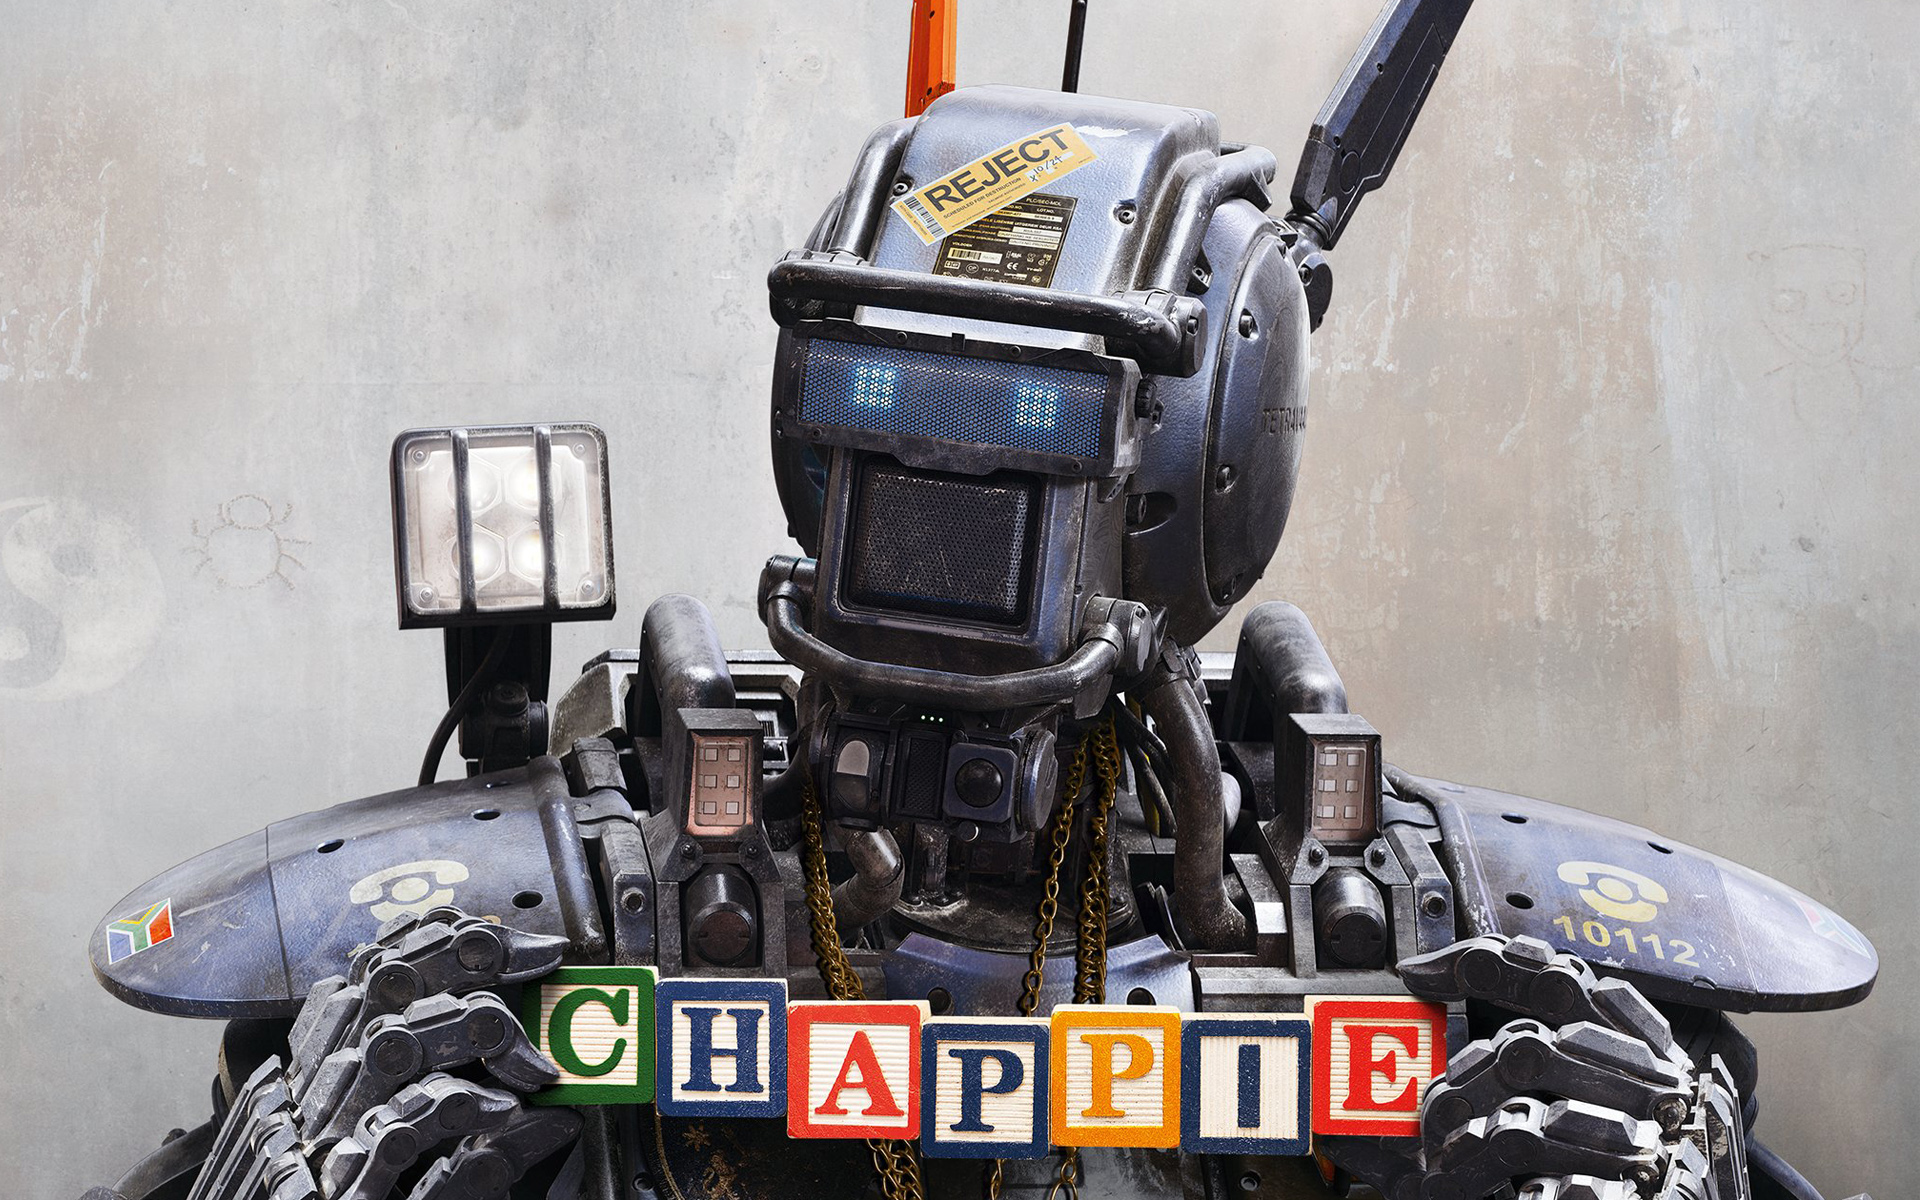 Chappie Wallpapers Pictures Images 1920x1200